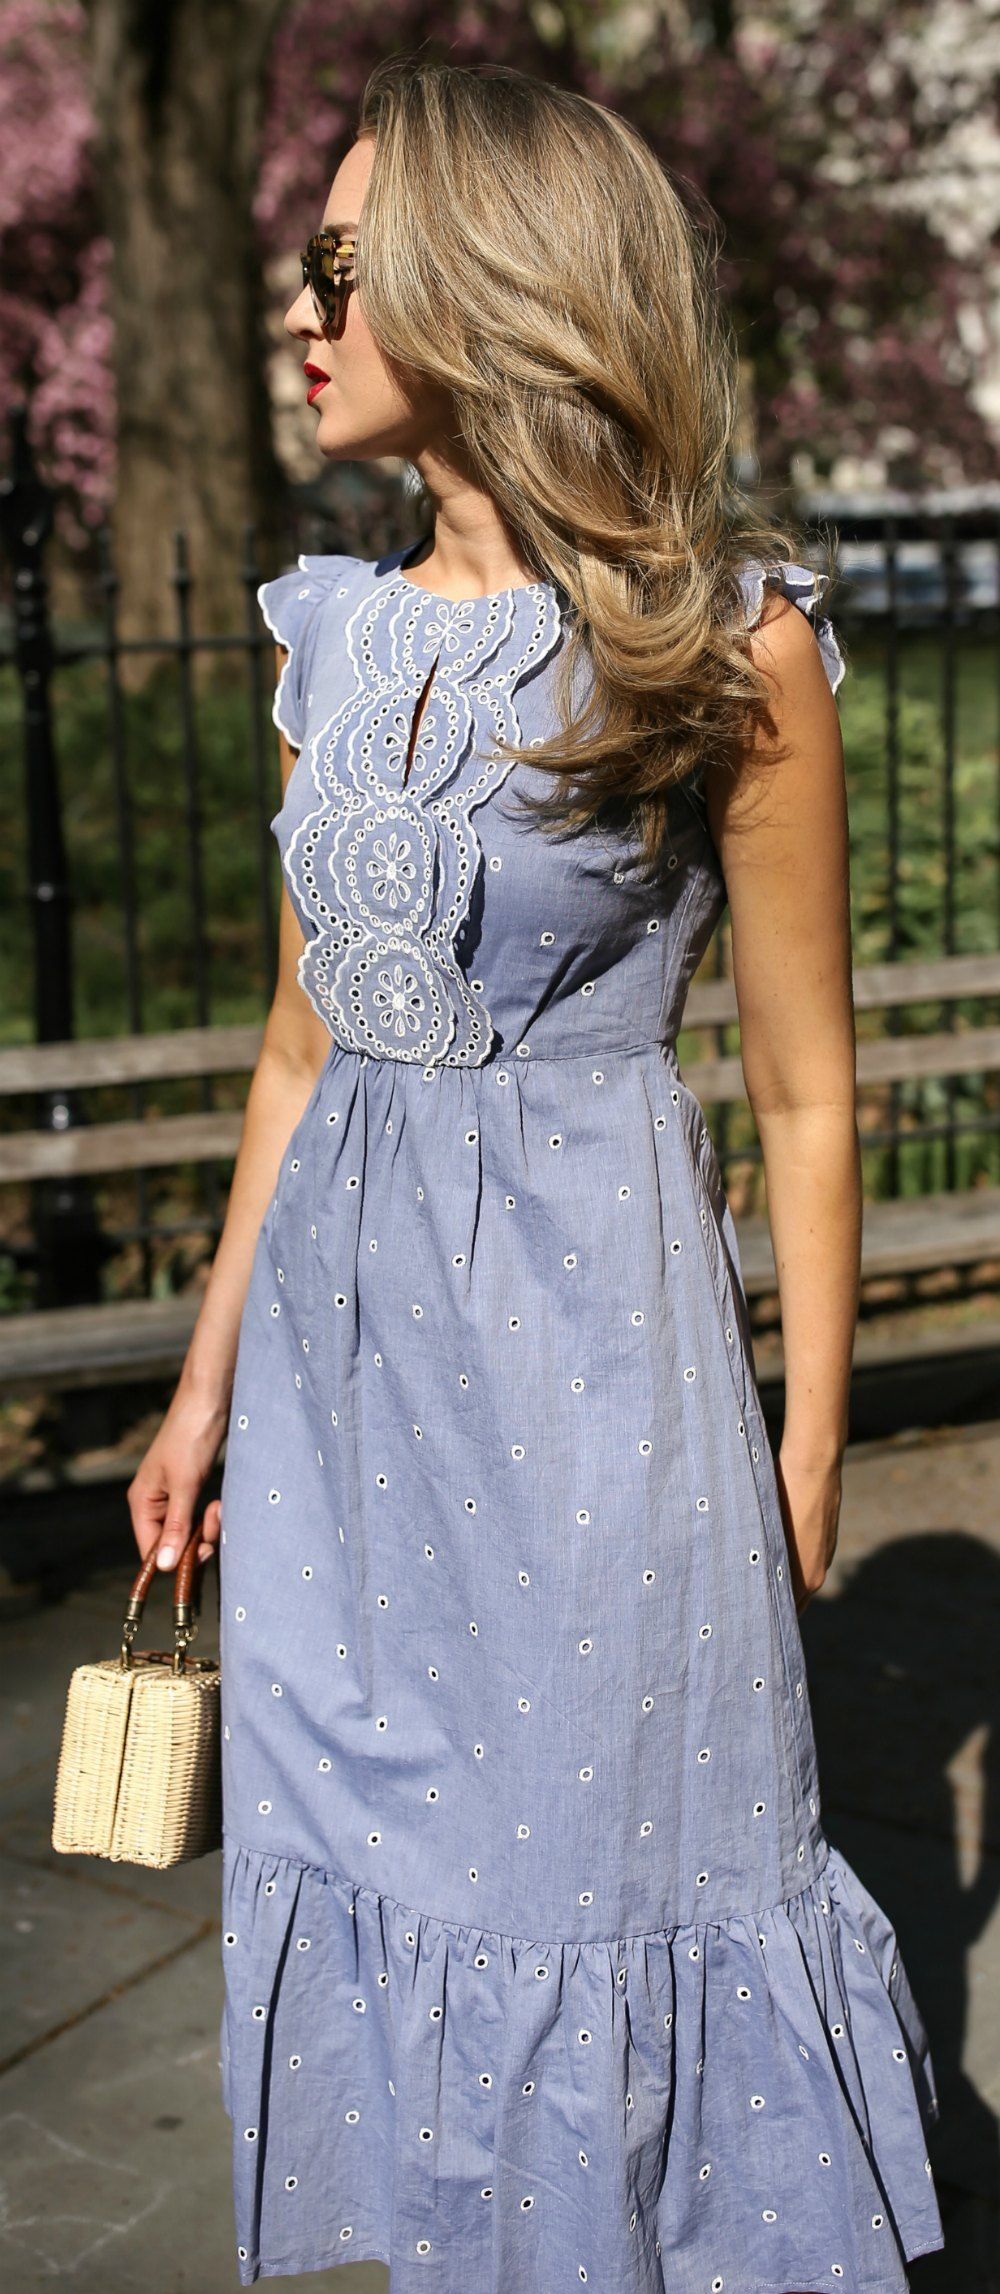 30 Dresses in 30 Days: Garden Party // Light blue contrast broderie anglaise emb…